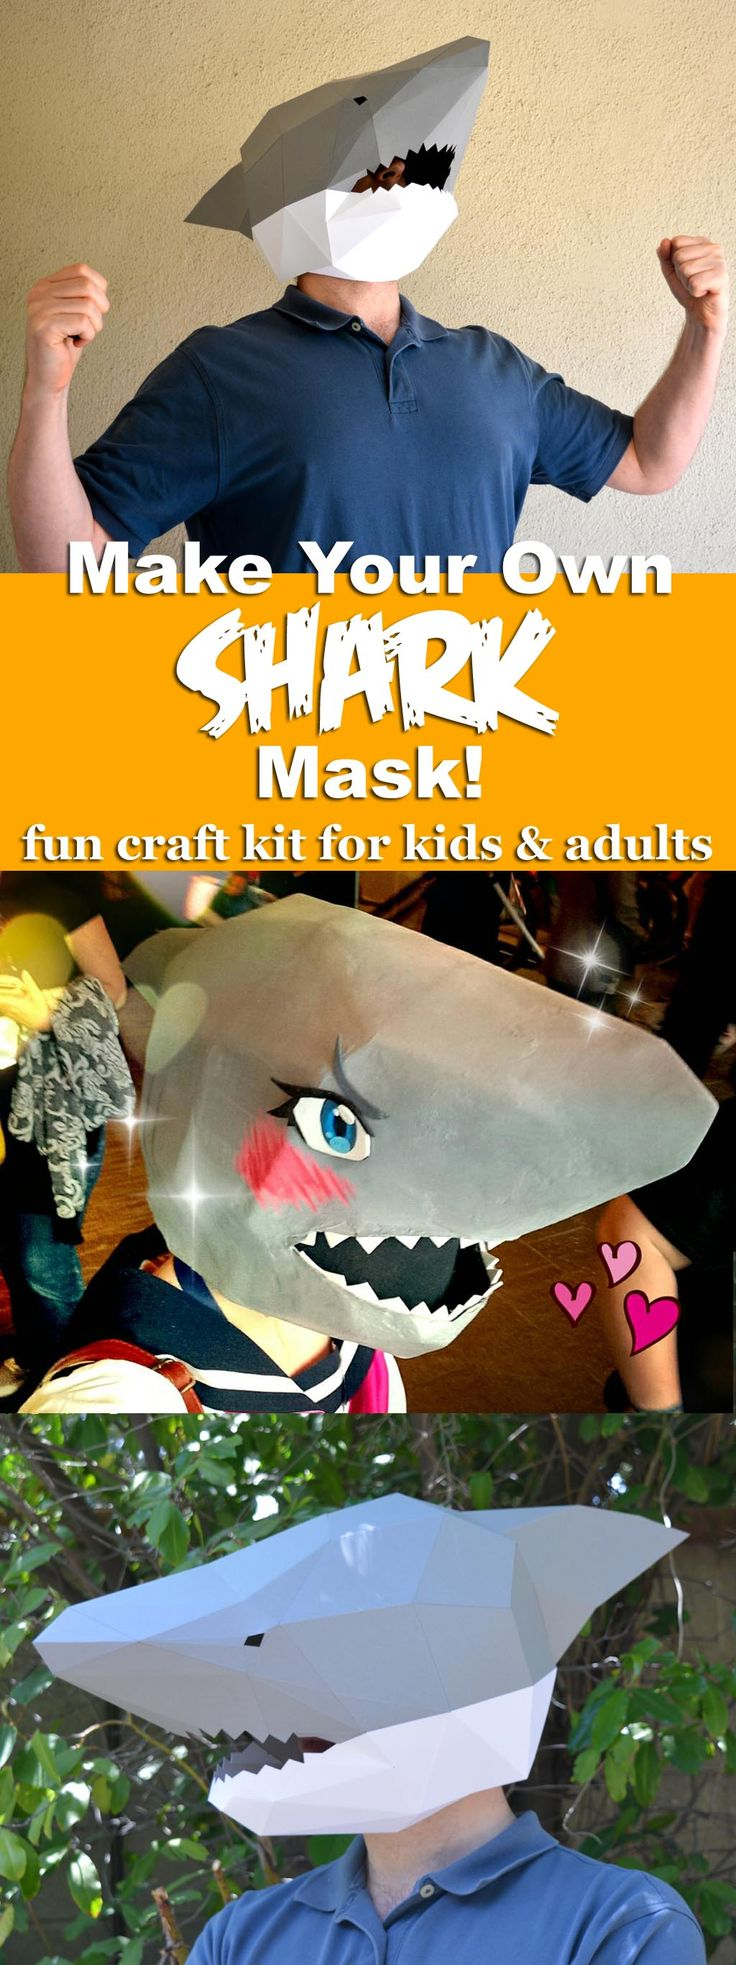 Awesome shark mask kit turns you into a man-shark! Great papercraft project. So much fun!